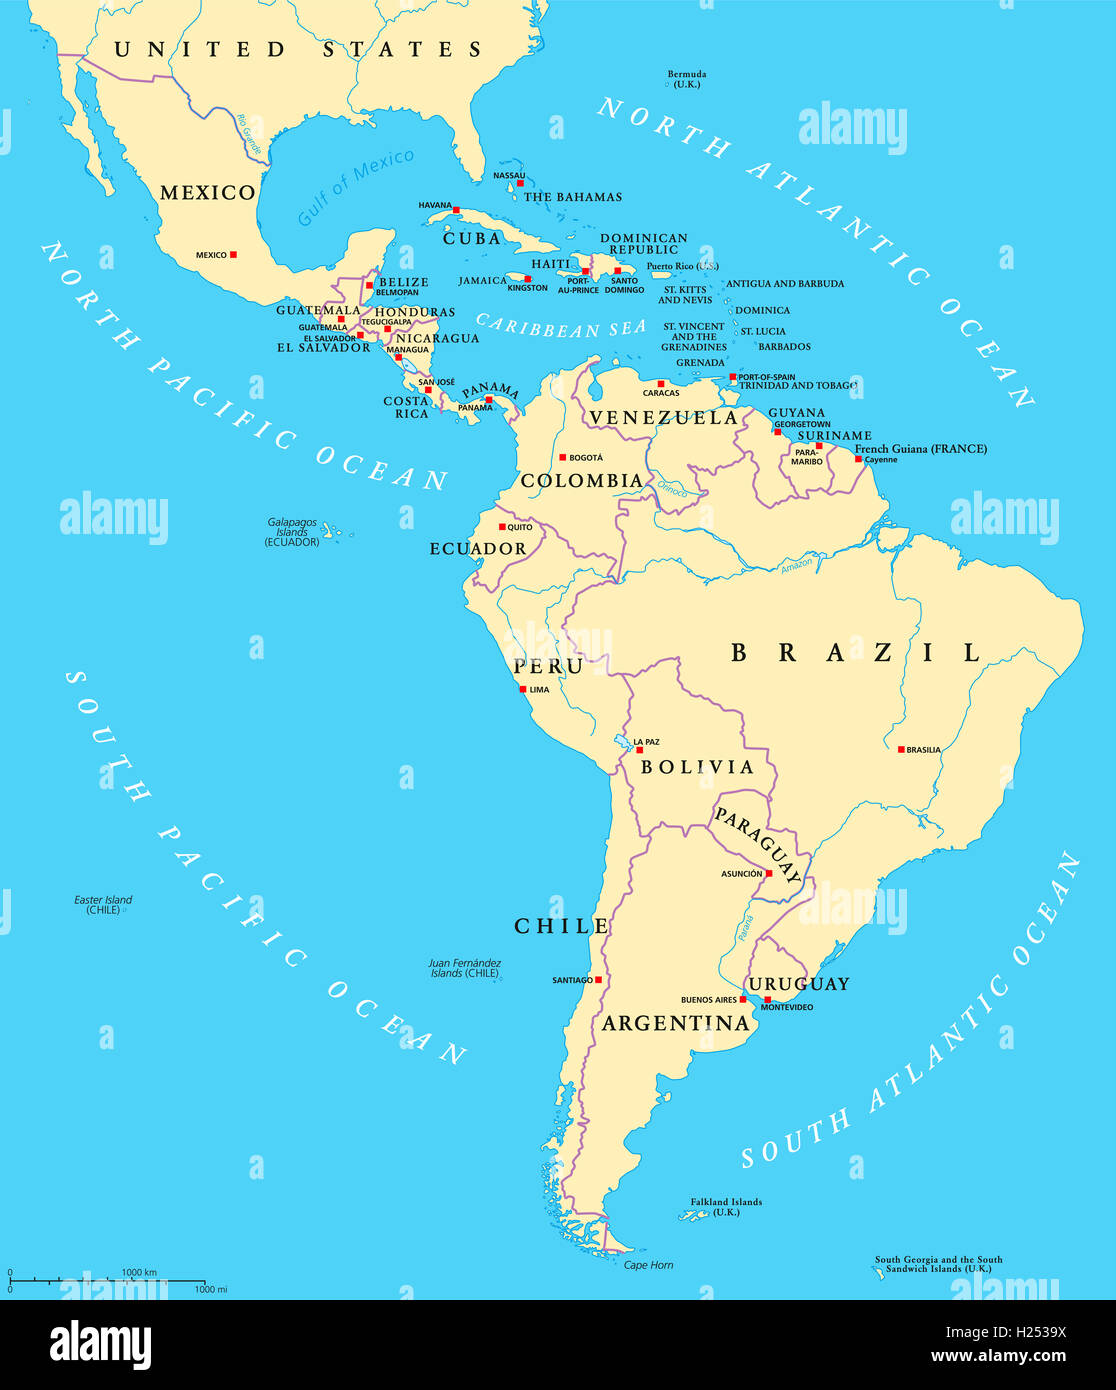 Latin America Political Map With Capitals, National Borders, Rivers And  Lakes  Stock